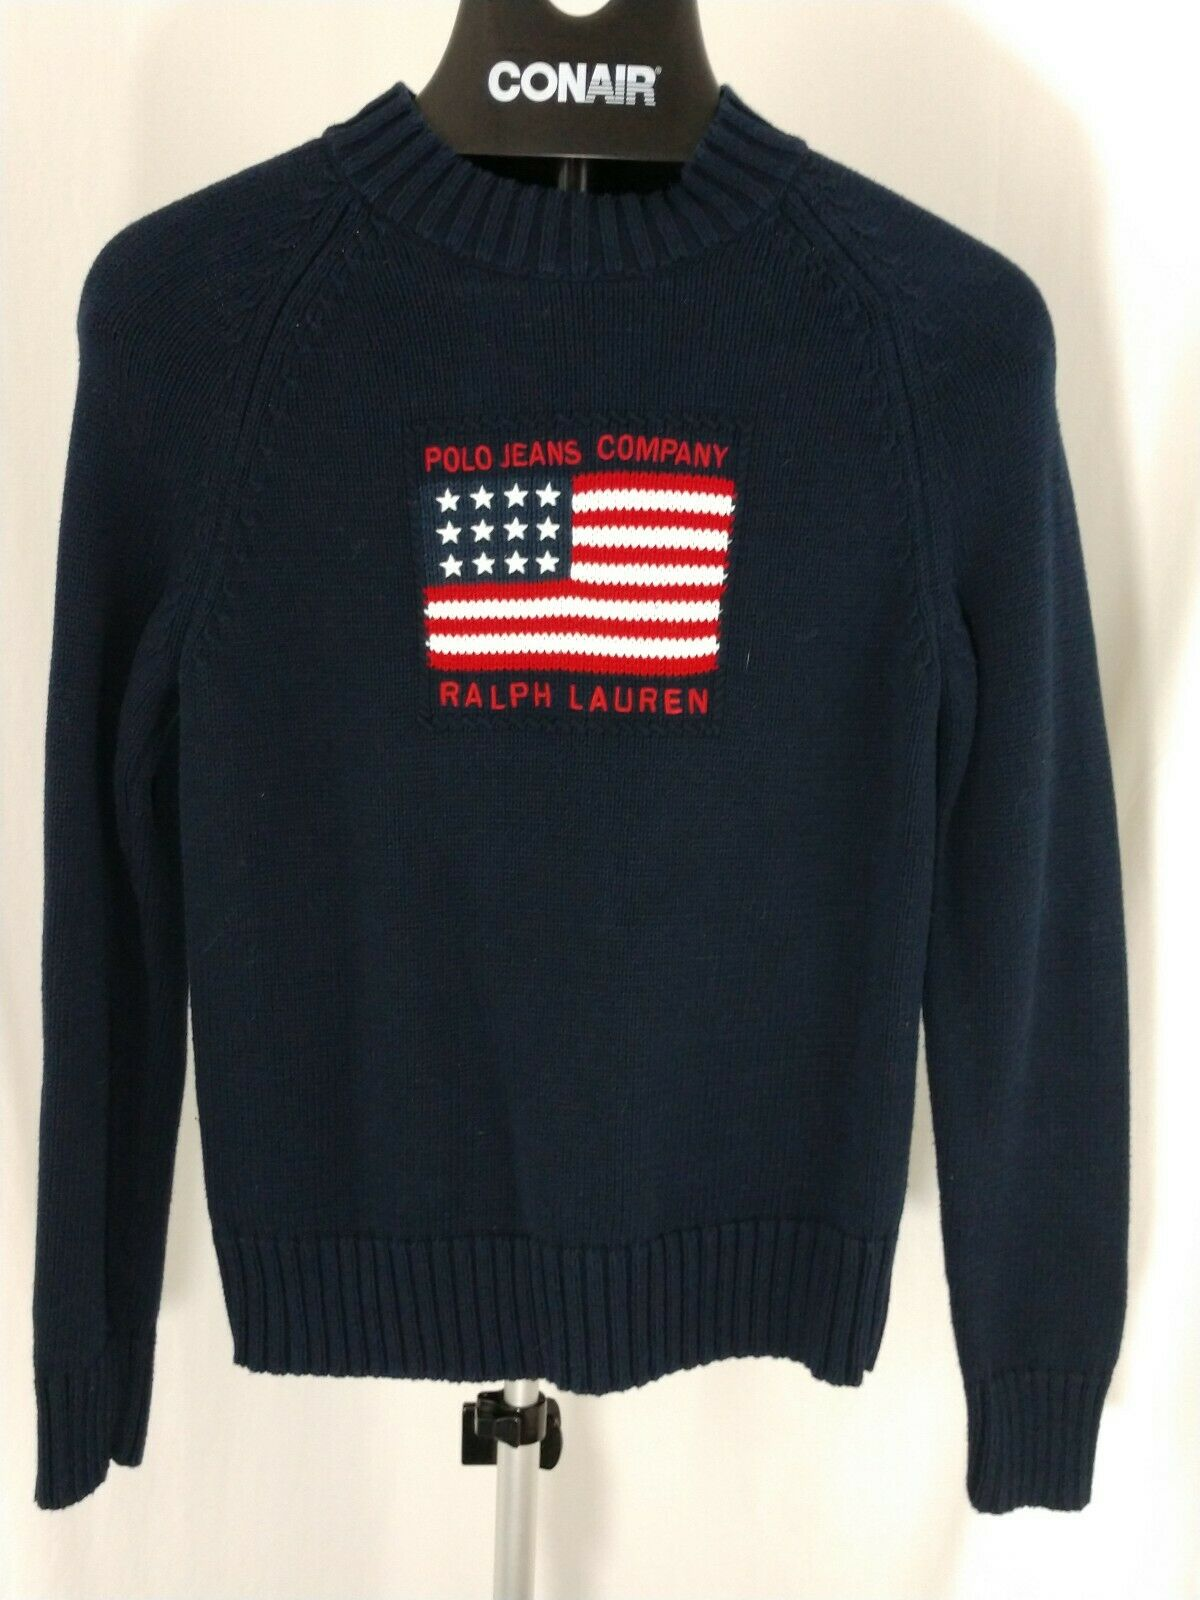 Vintage Polo Jeans Company Ralph Lauren USA Flag Sweater